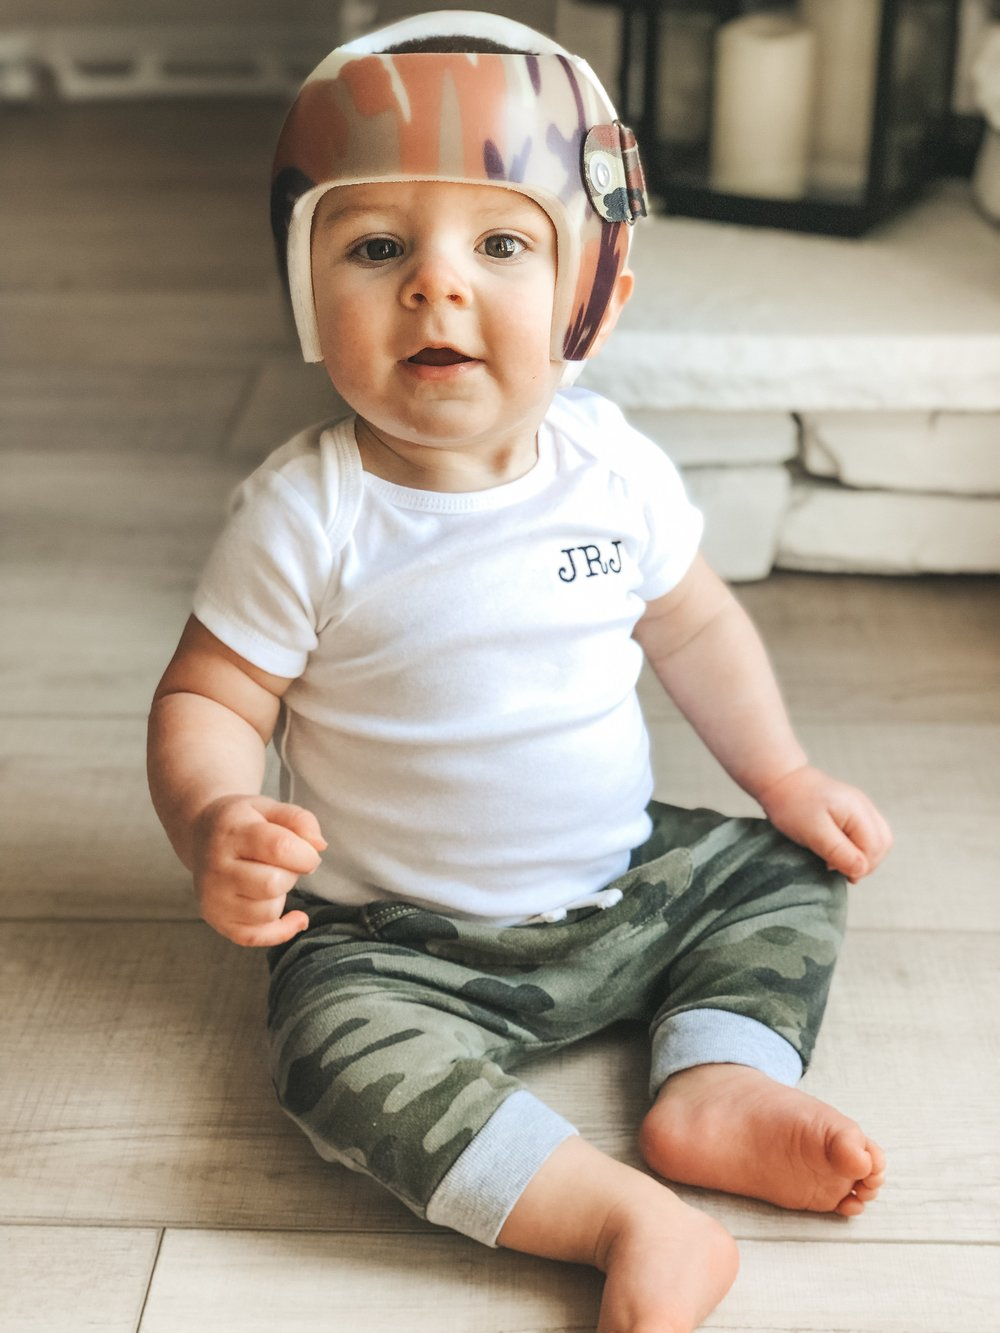 Jett Jones 10 months old.  Monogrammed onesies for babies.  Camo joggers from baby Gap.  Camo starband helmet from Hangar clinic.